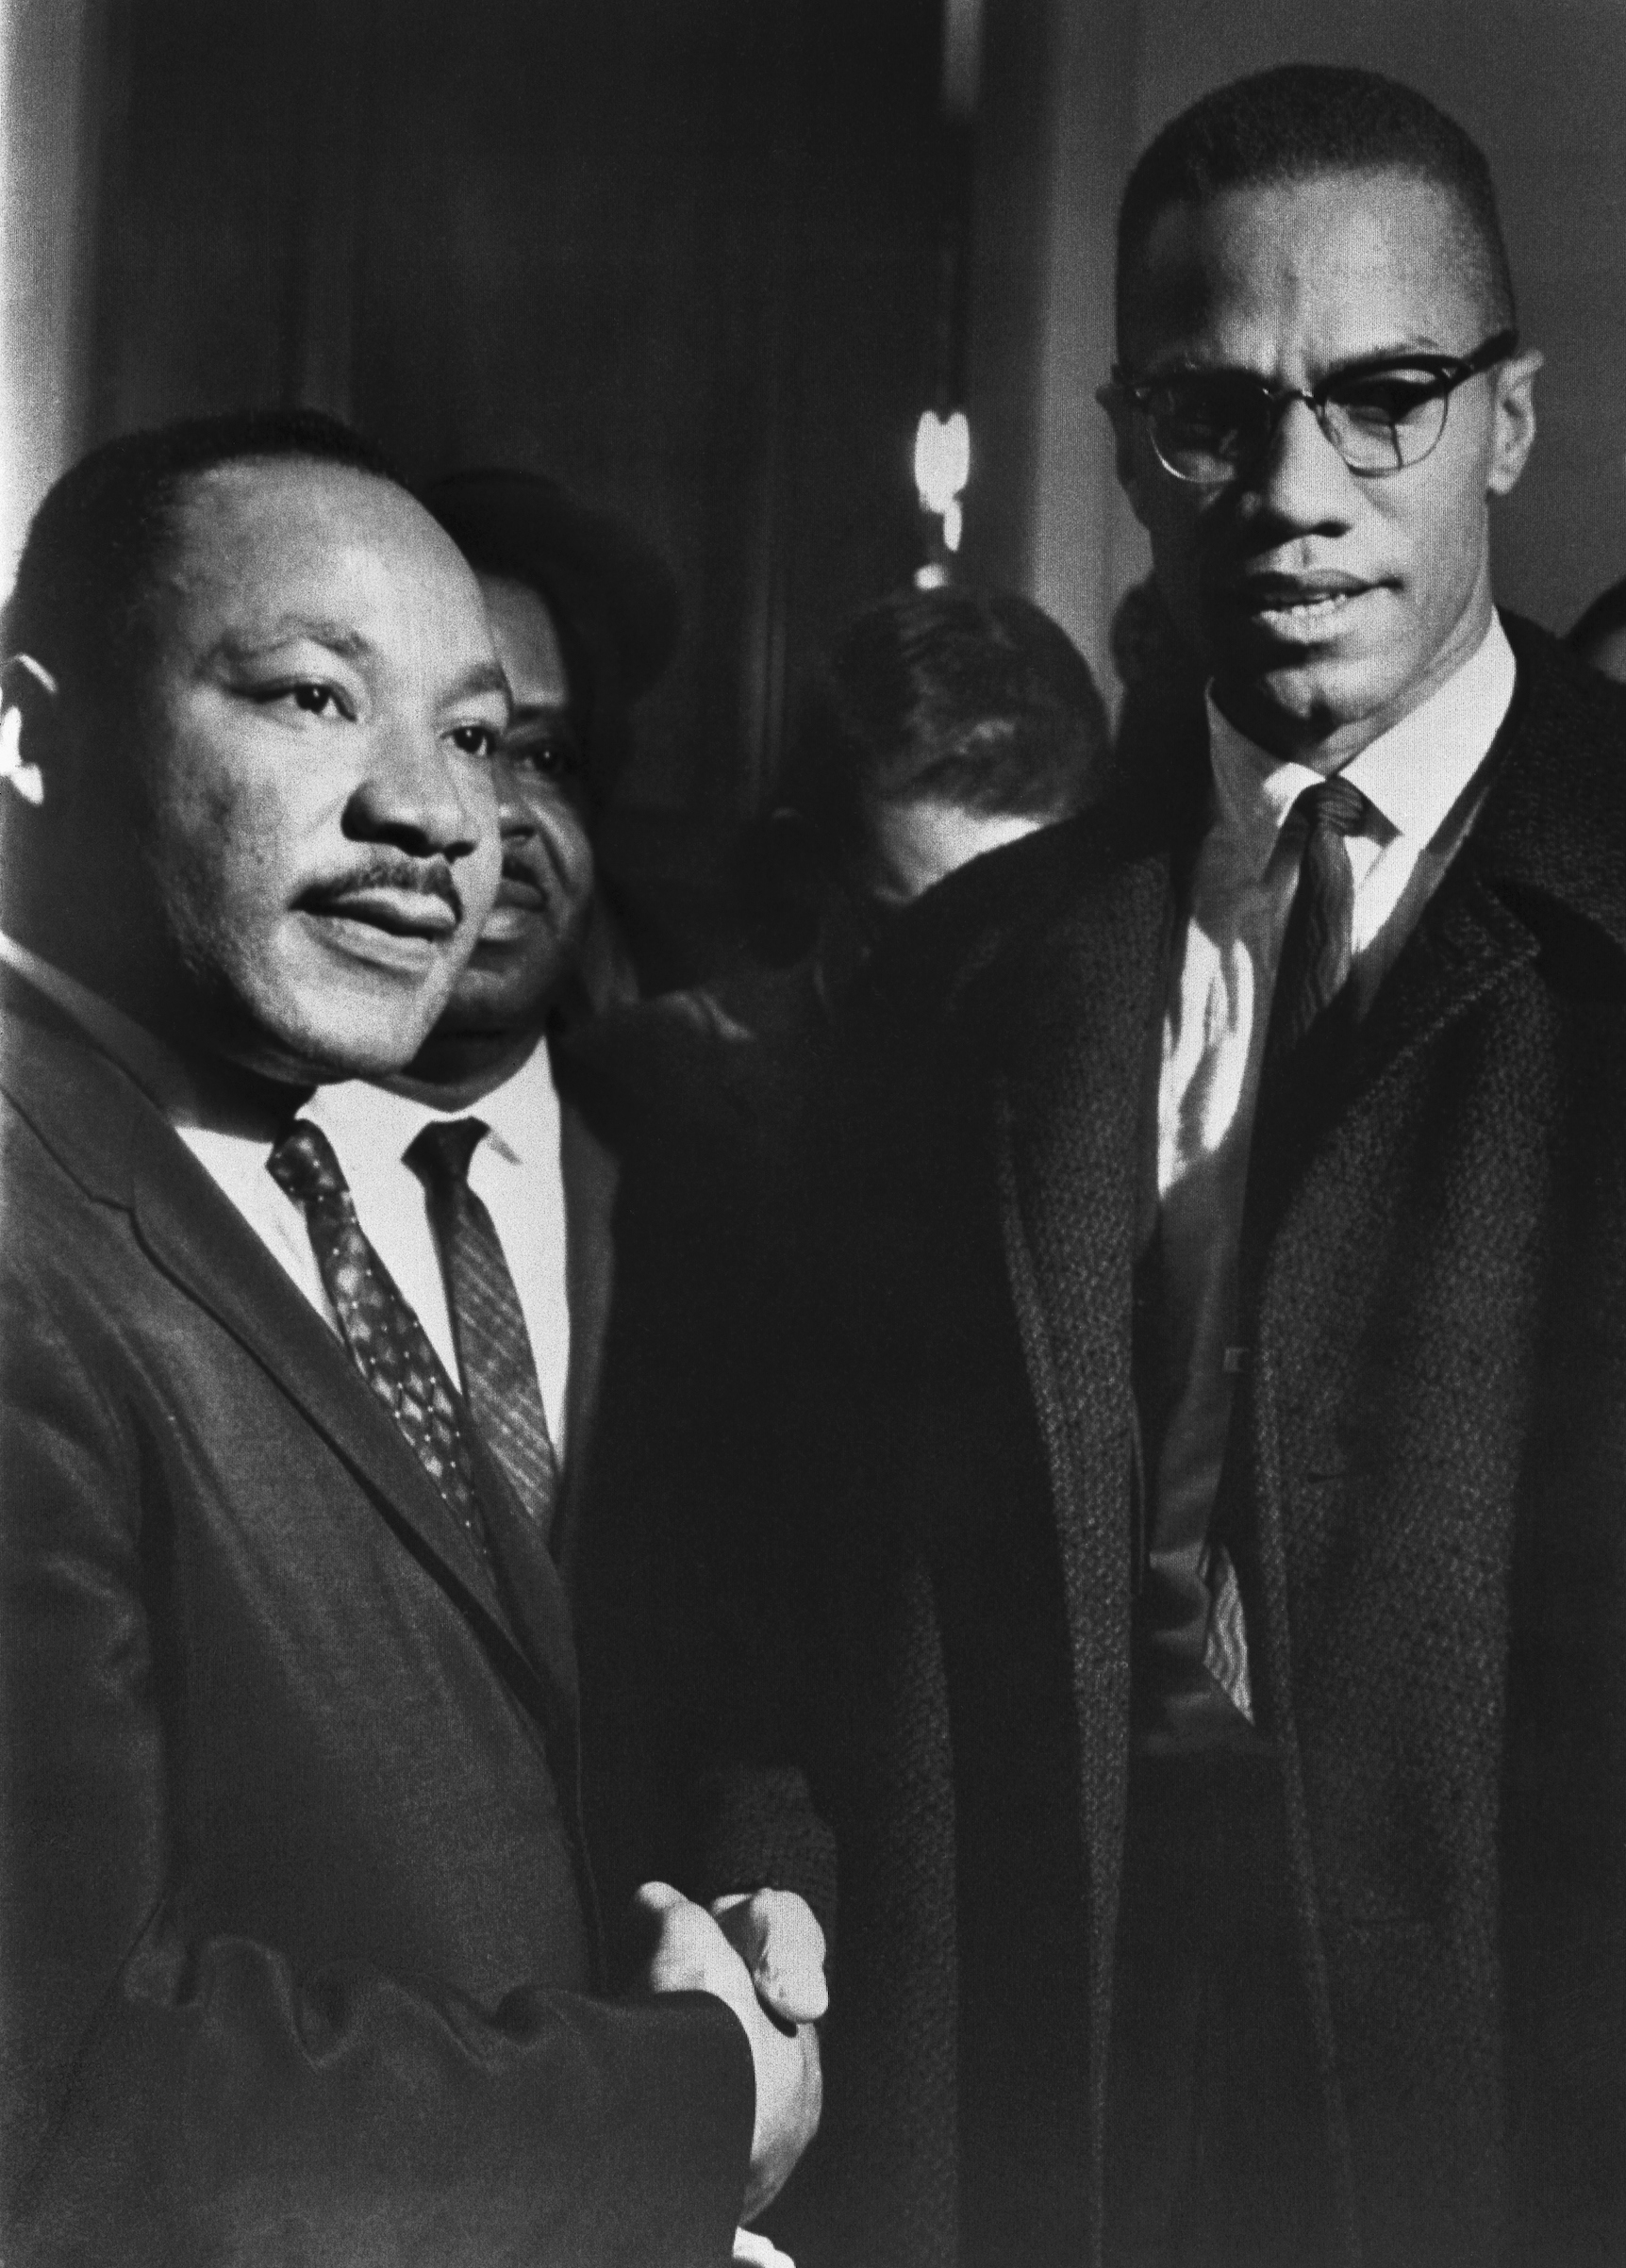 The brief, and only, meeting between Malcolm X and Martin Luther King, in the halls of the U.S. Capitol, observing a Senate filibuster on the Voting Rights Act in 1964.